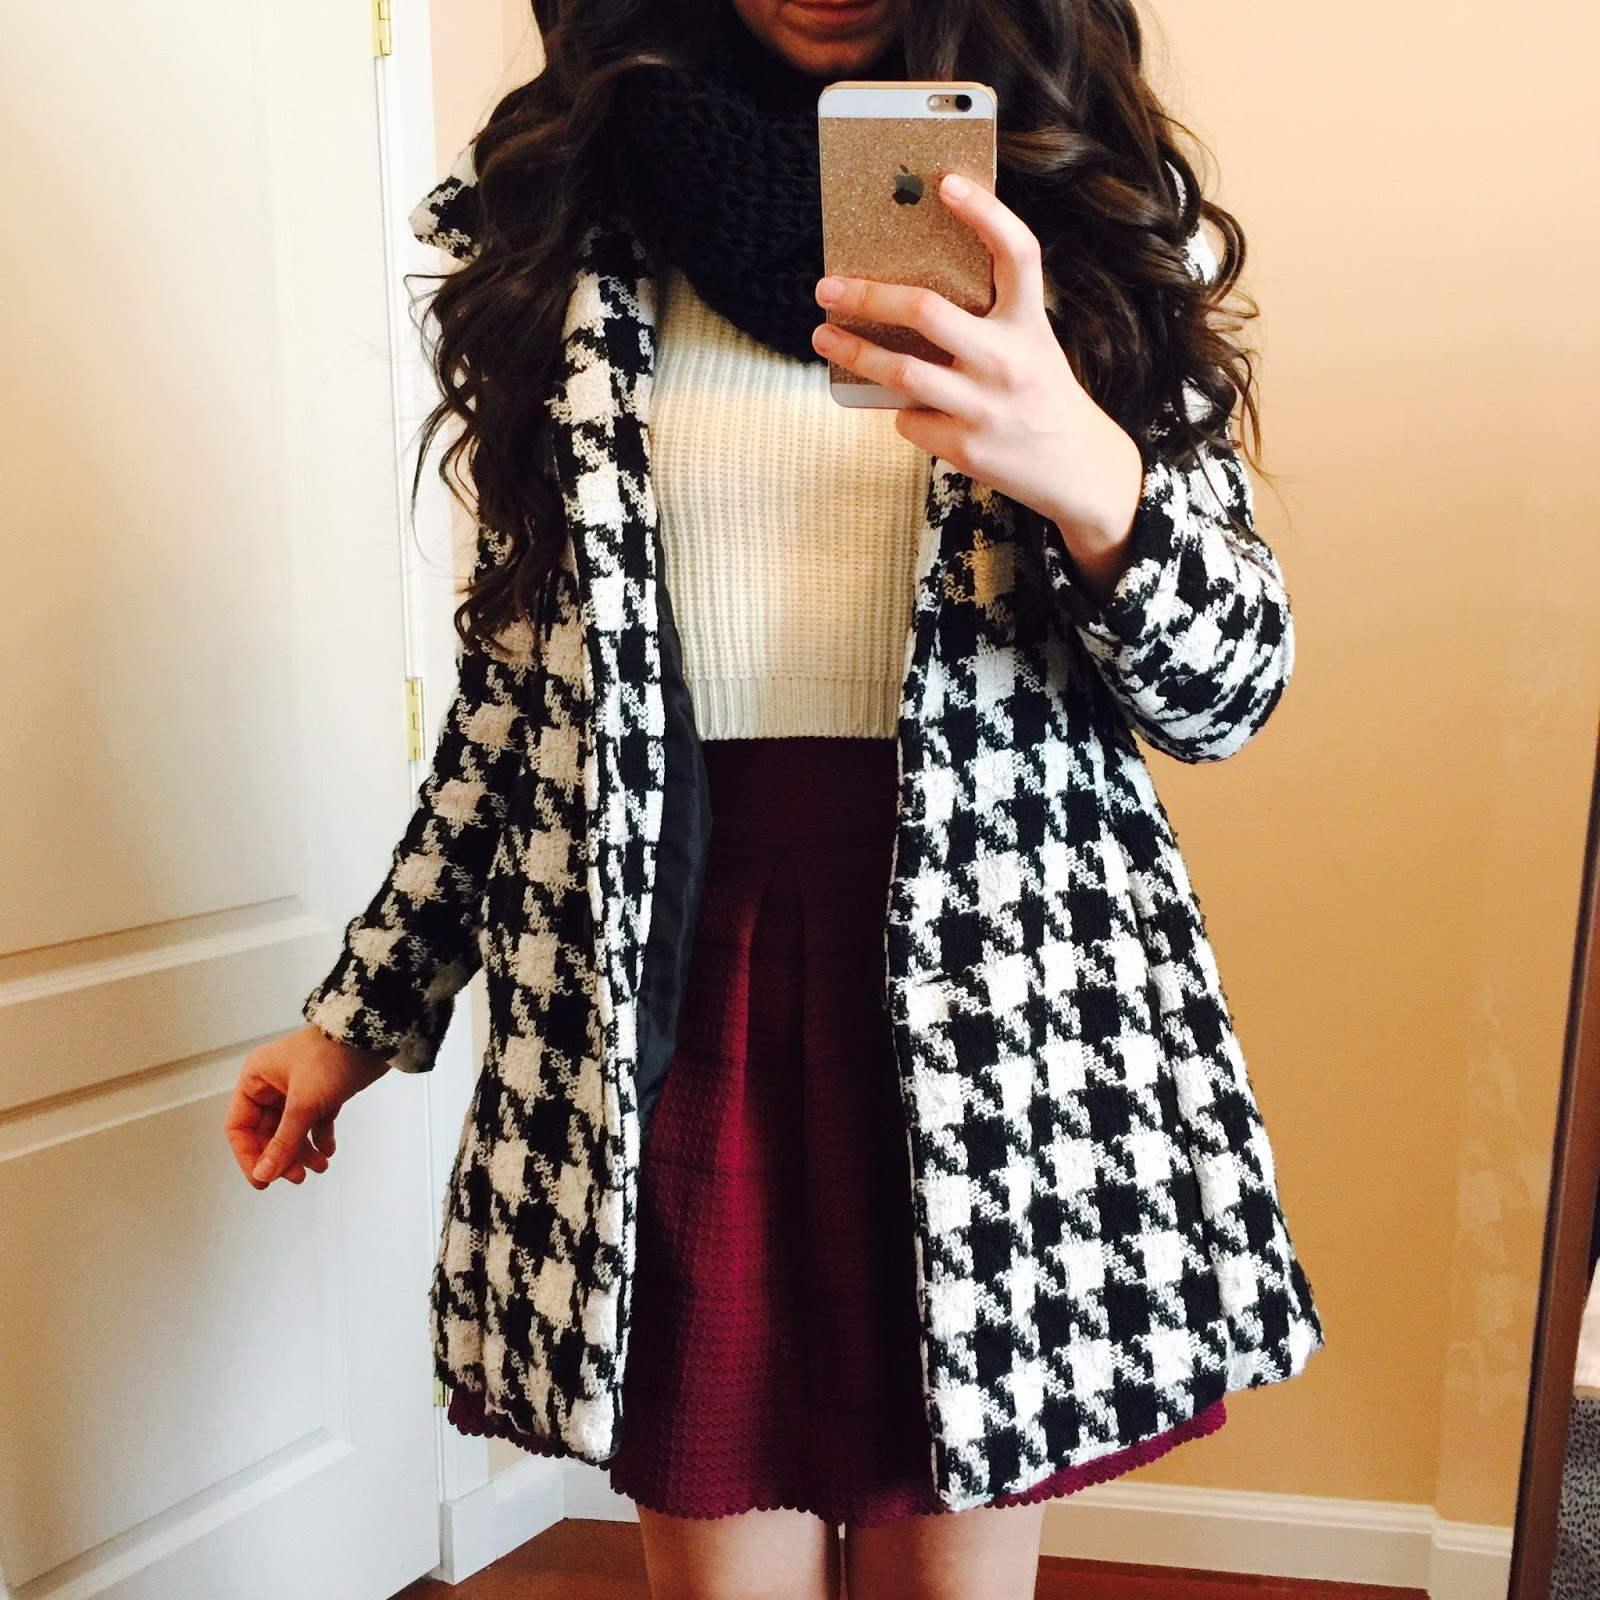 Curvy Outfit Ideas   Petite Outfit Ideas   Plus Size Fashion   Summer Fashion   OOTD   Professional Casual Chic Fashion and Style Inspiration    How to style a black knitted scarf   Perfect Gift for the Holidays   Locotrends Scarf   Locotrends   Casual Outfit  